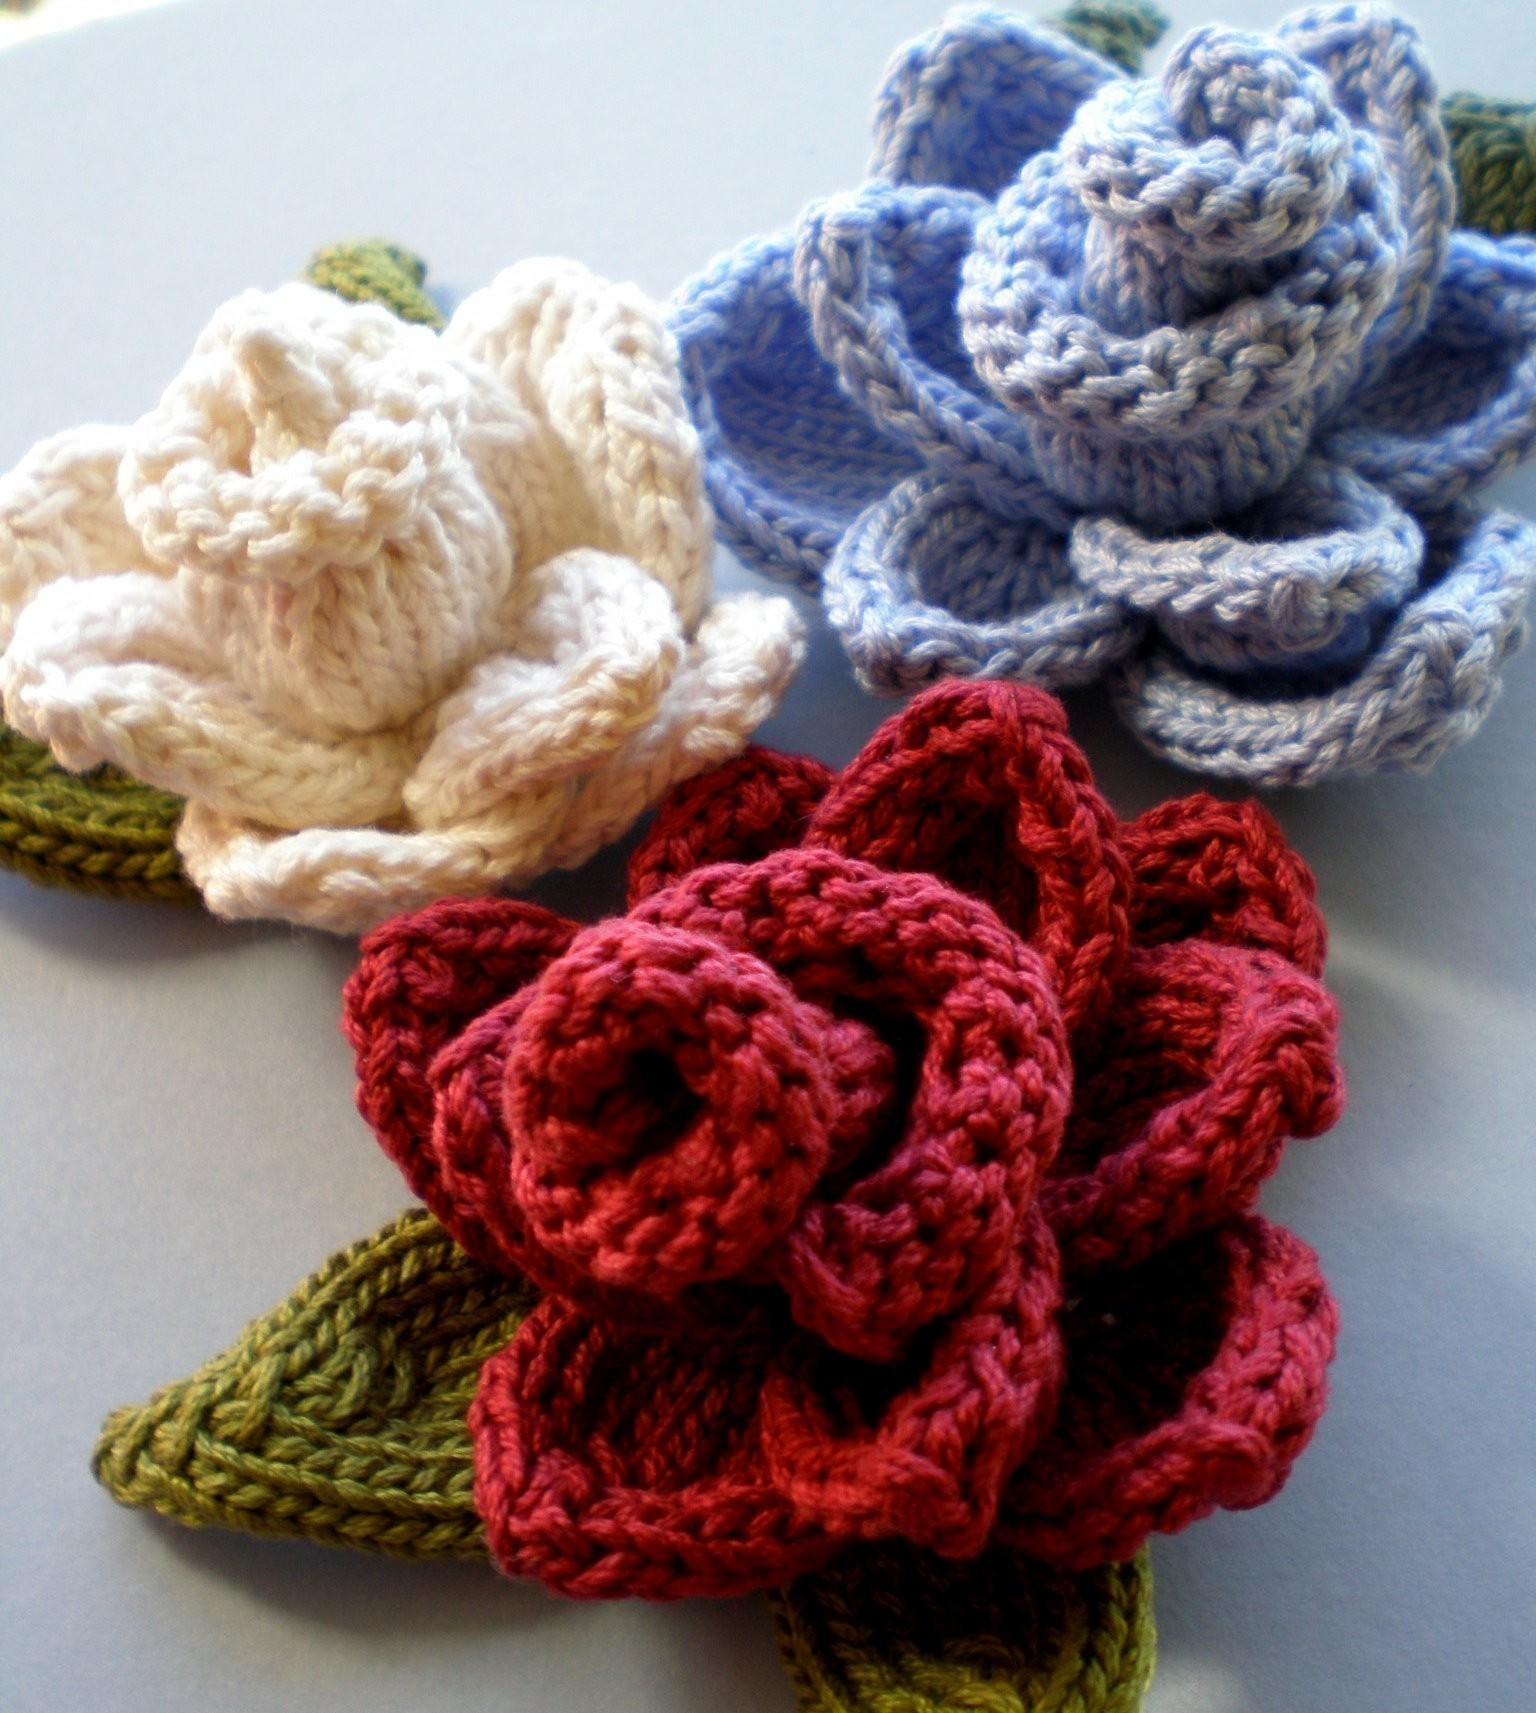 Knitting Flowers Patterns Free: Simple knit flower free pattern purl ...